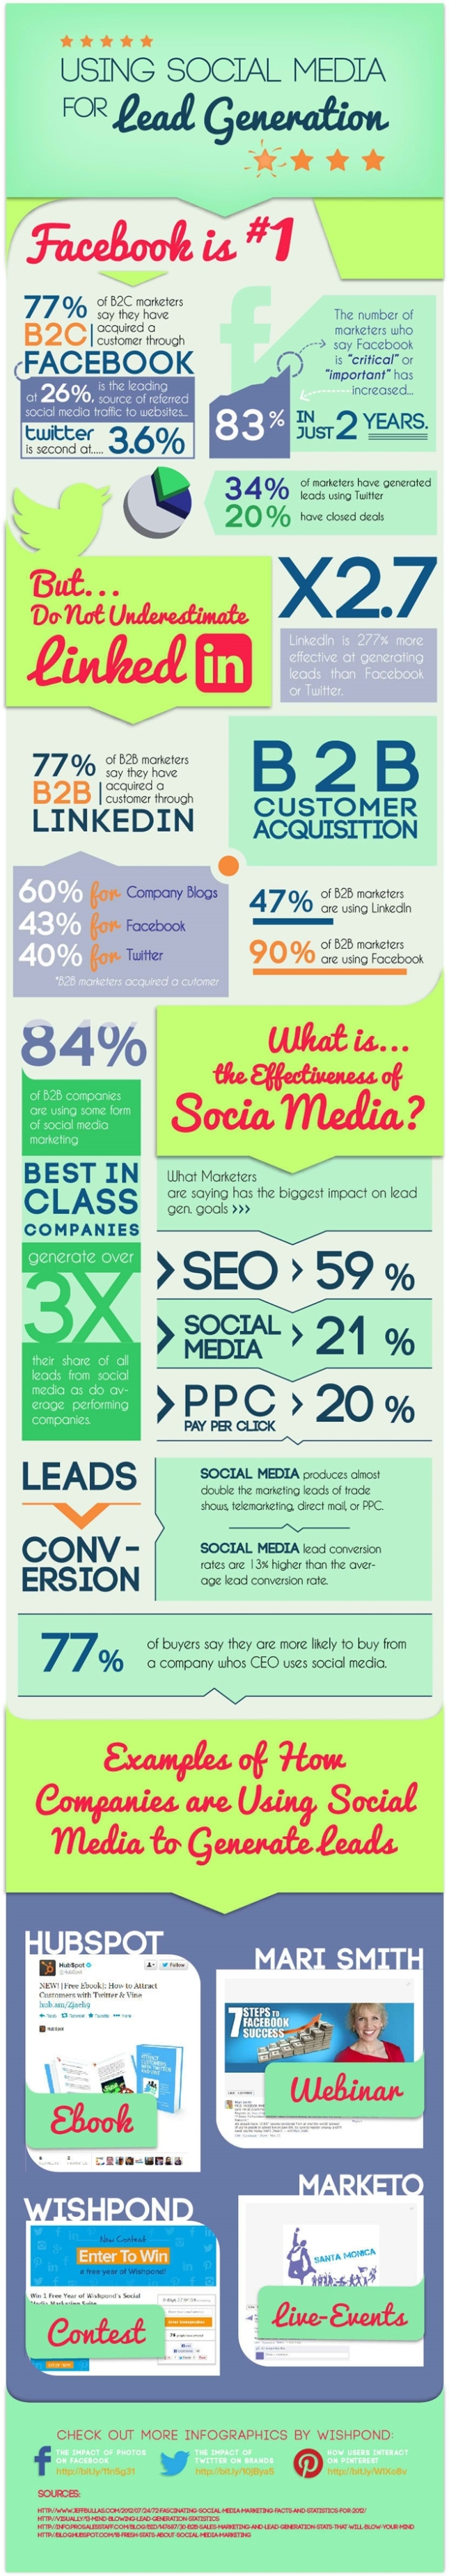 Using-Social-Media-For-Lead-Generation-Infographic